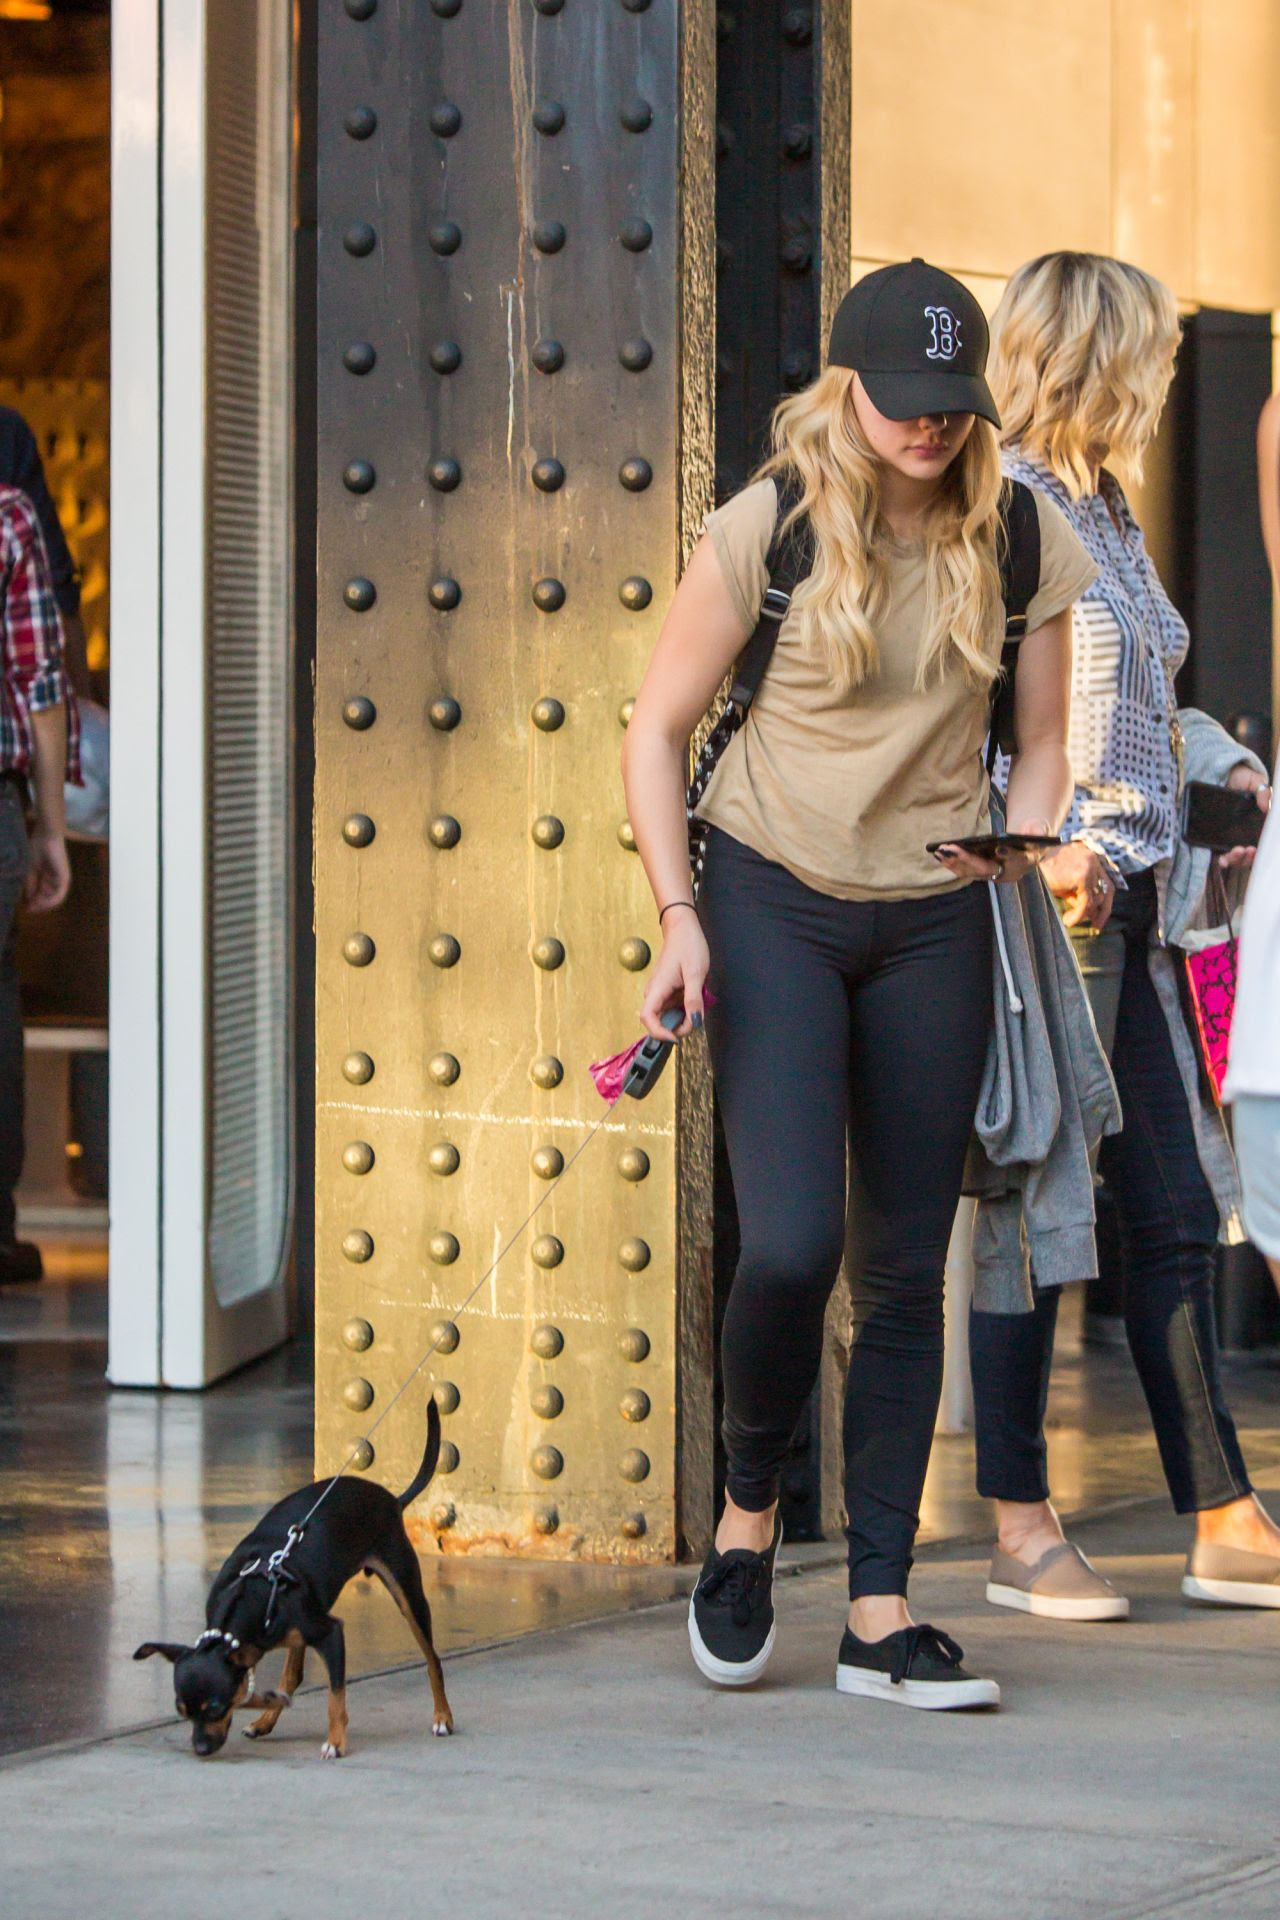 http://celebmafia.com/wp-content/uploads/2015/09/chloe-moretz-out-with-her-dog-in-nyc-september-2015_4.jpg